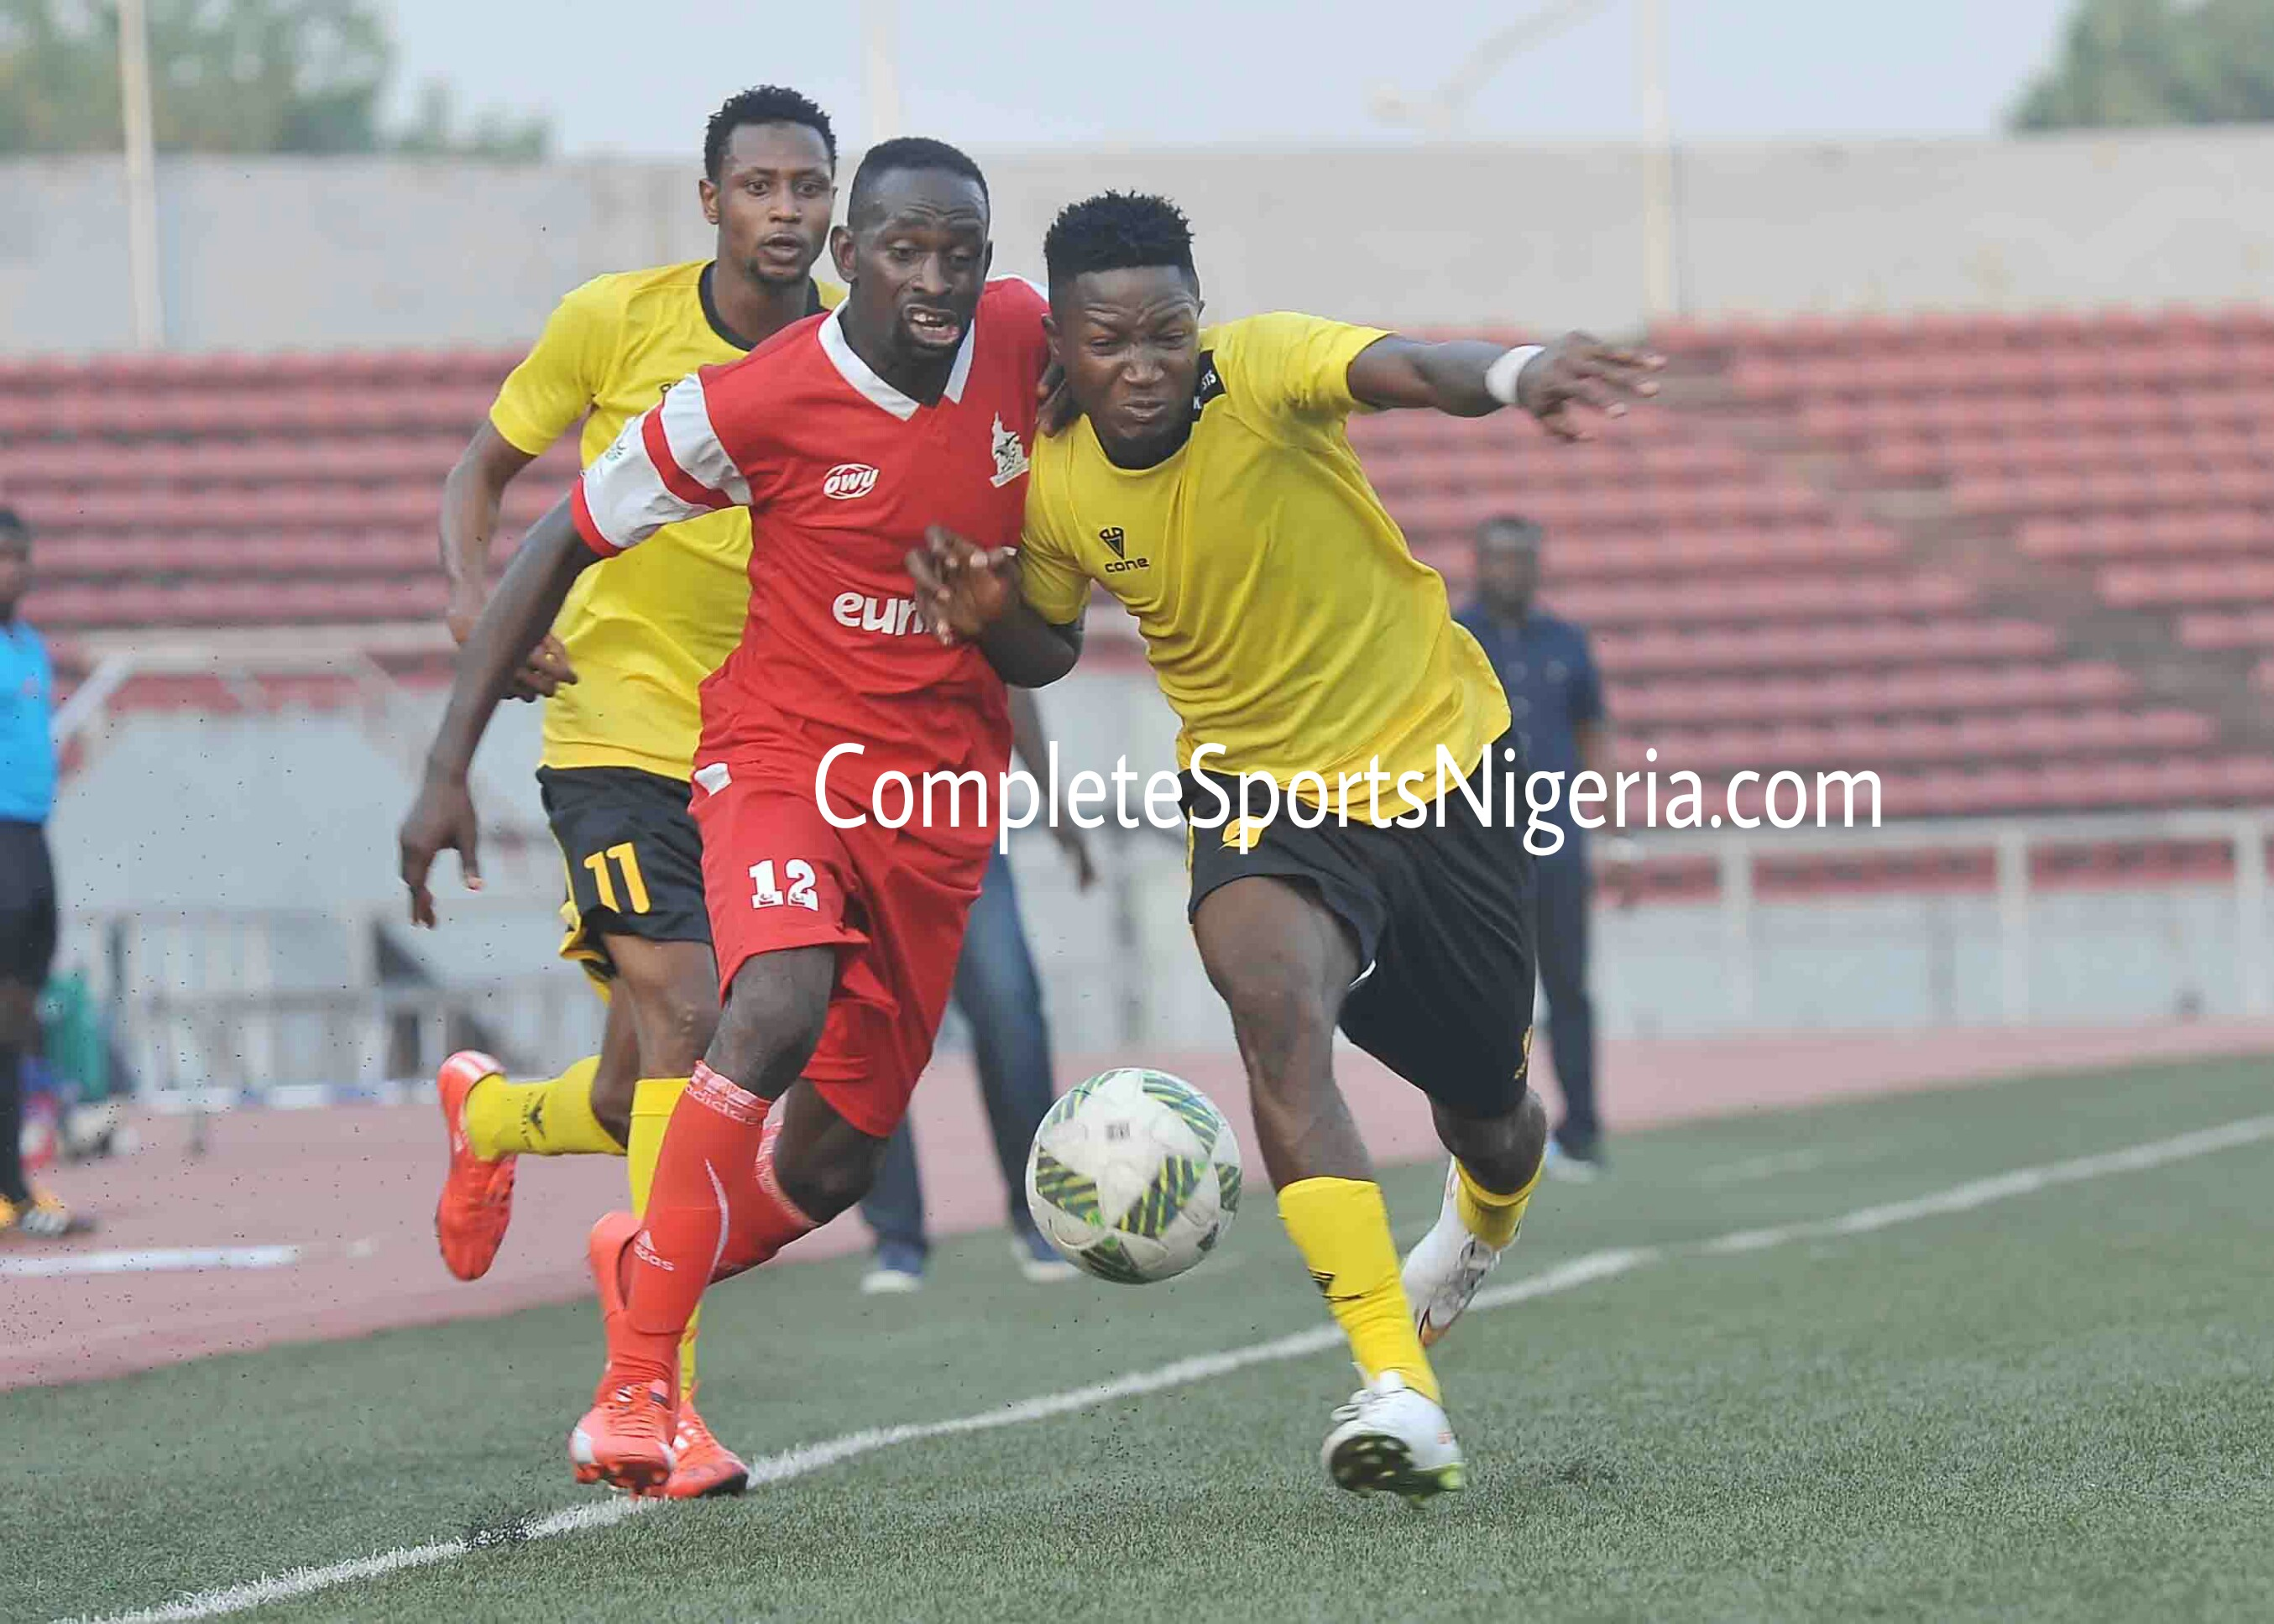 5 Things To Look Out For On NPFL Matchday 14